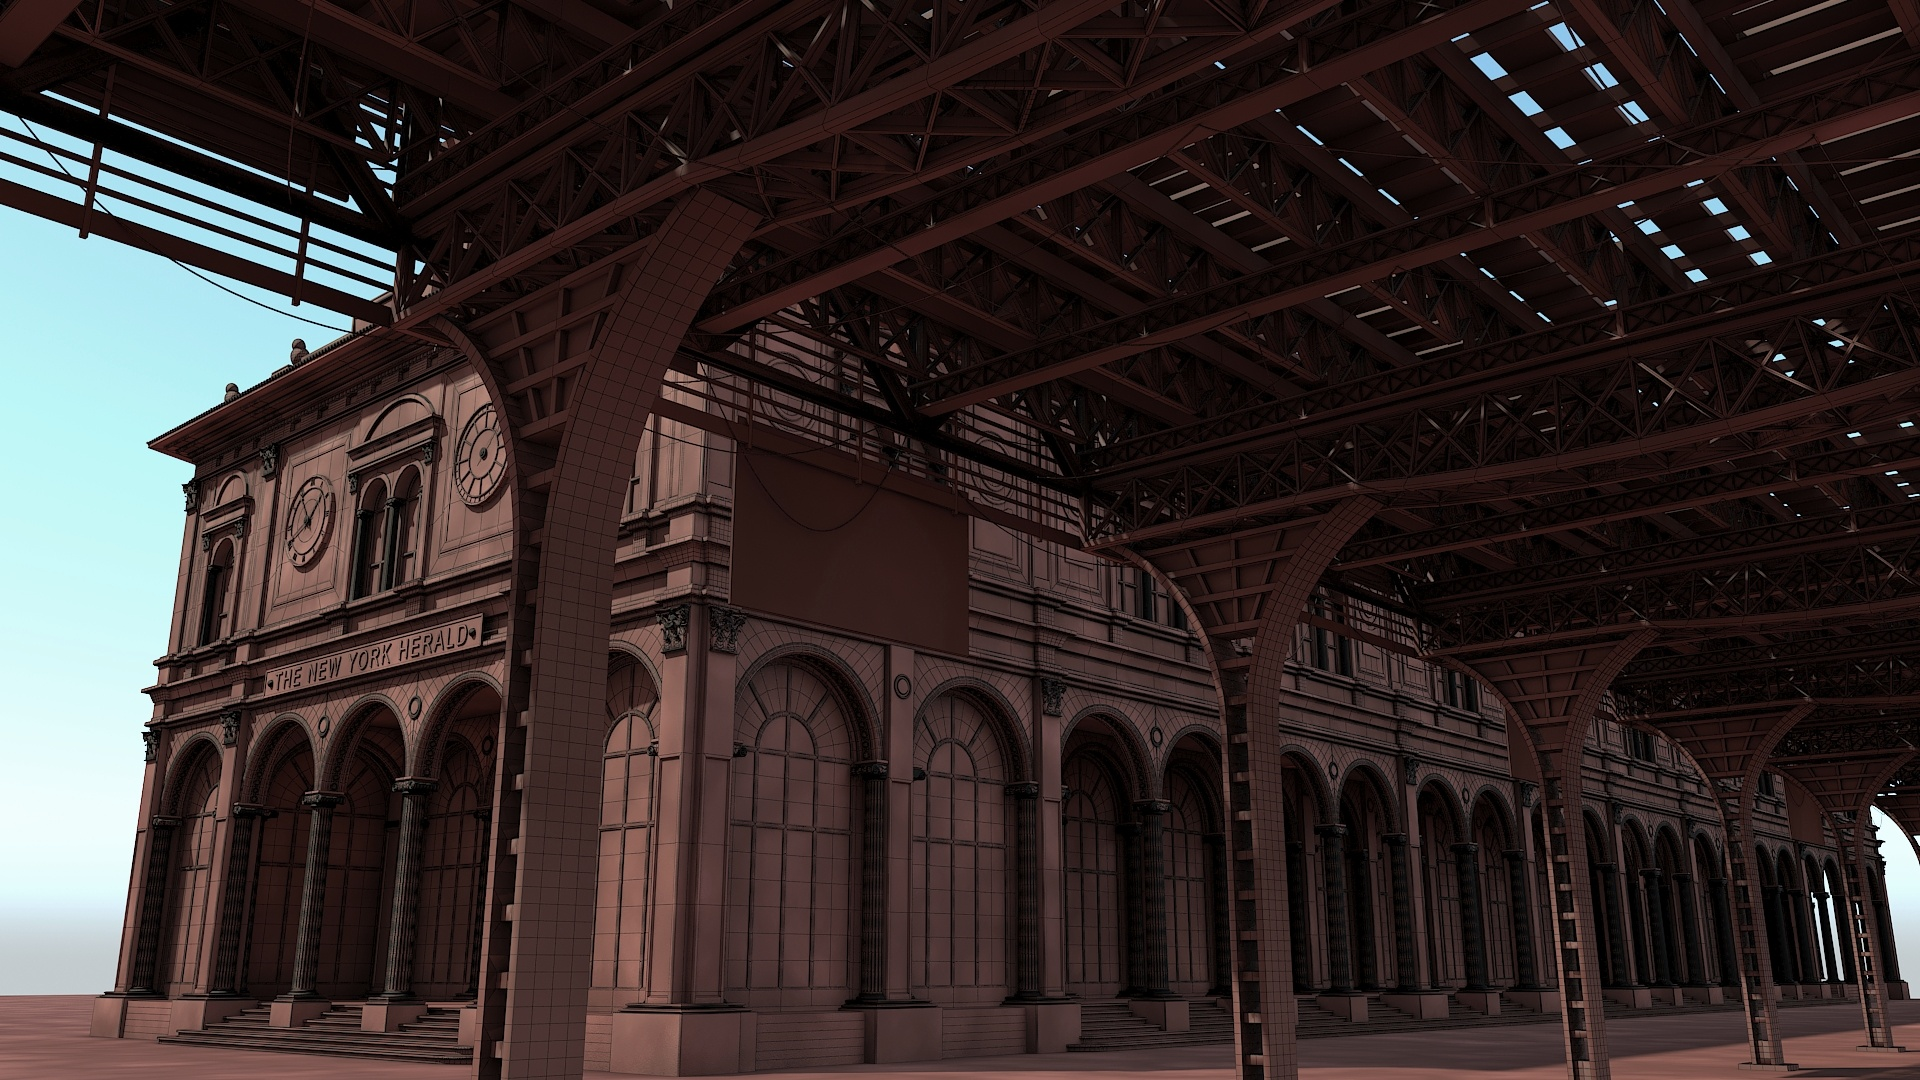 Architectural visualization | Old buildings